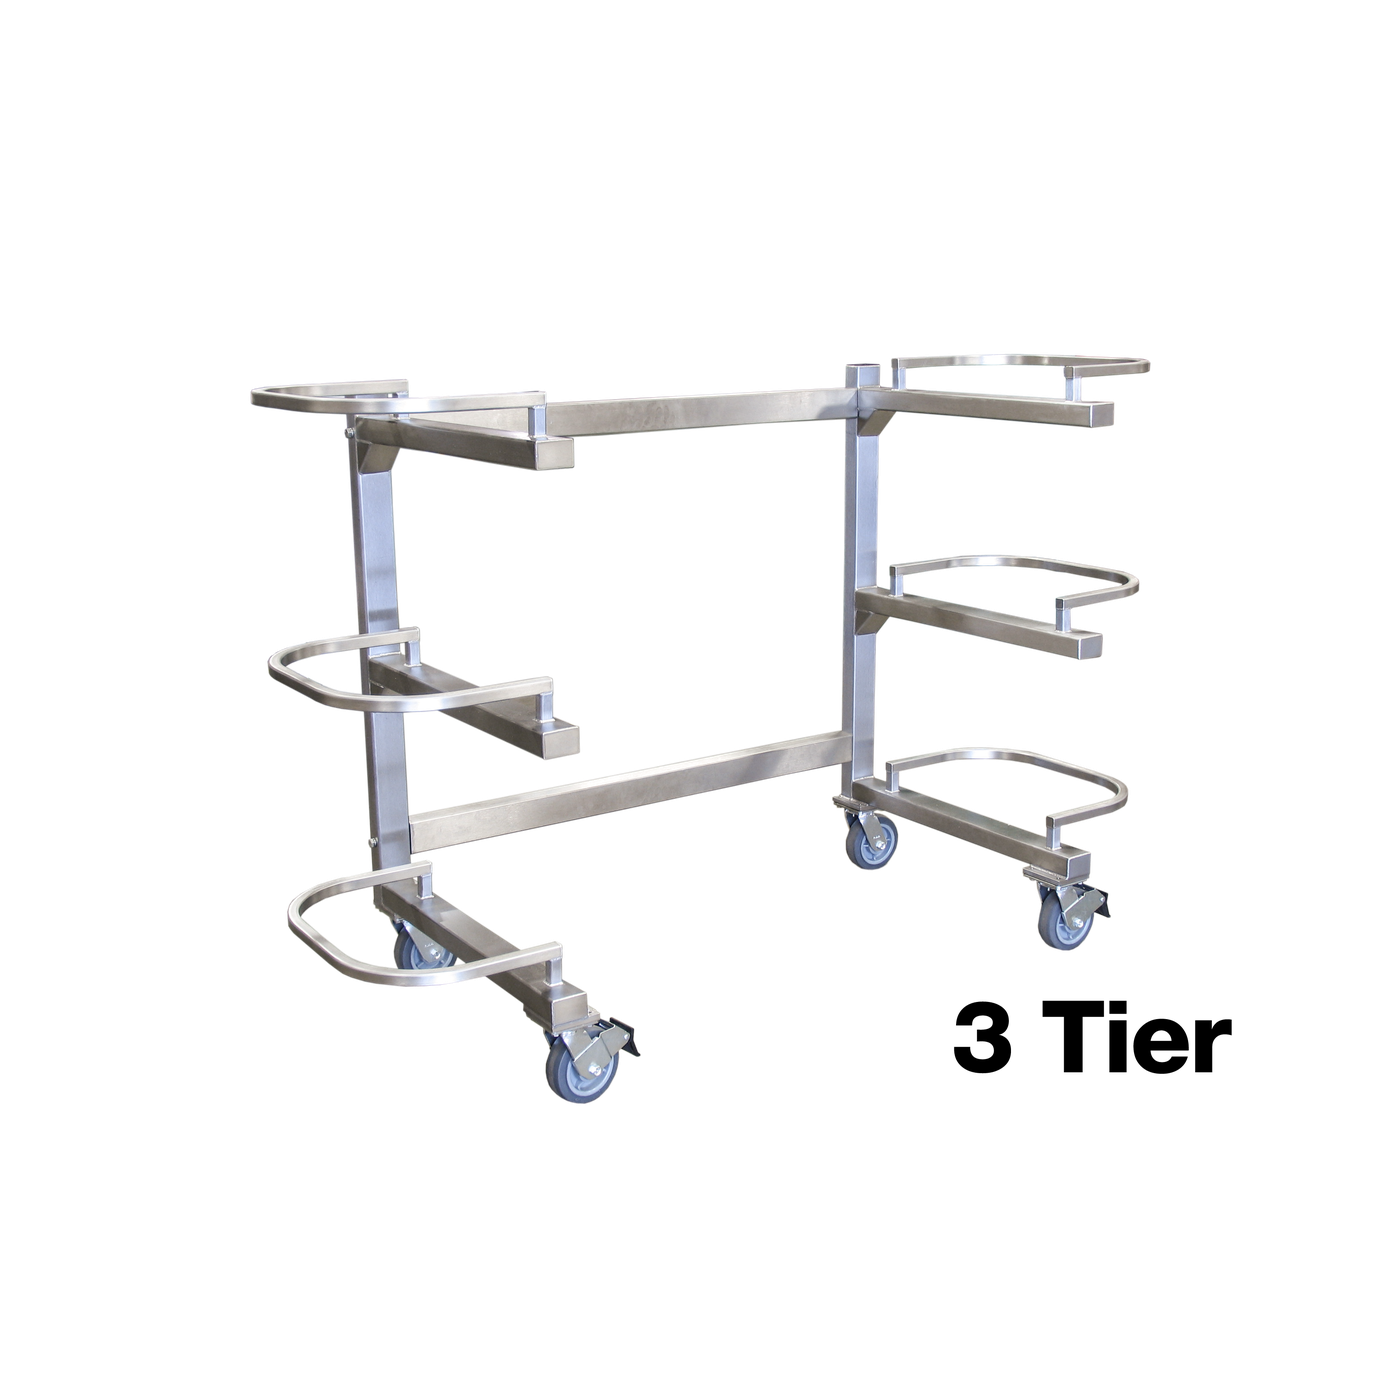 Two Tier Storage Carrier (7020-03)-Cadaver Handling & Storage Systems-Mortech Manufacturing Company Inc. Quality Stainless Steel Autopsy, Morgue, Funeral Home, Necropsy, Veterinary / Anatomy, Dissection Equipment and Accessories